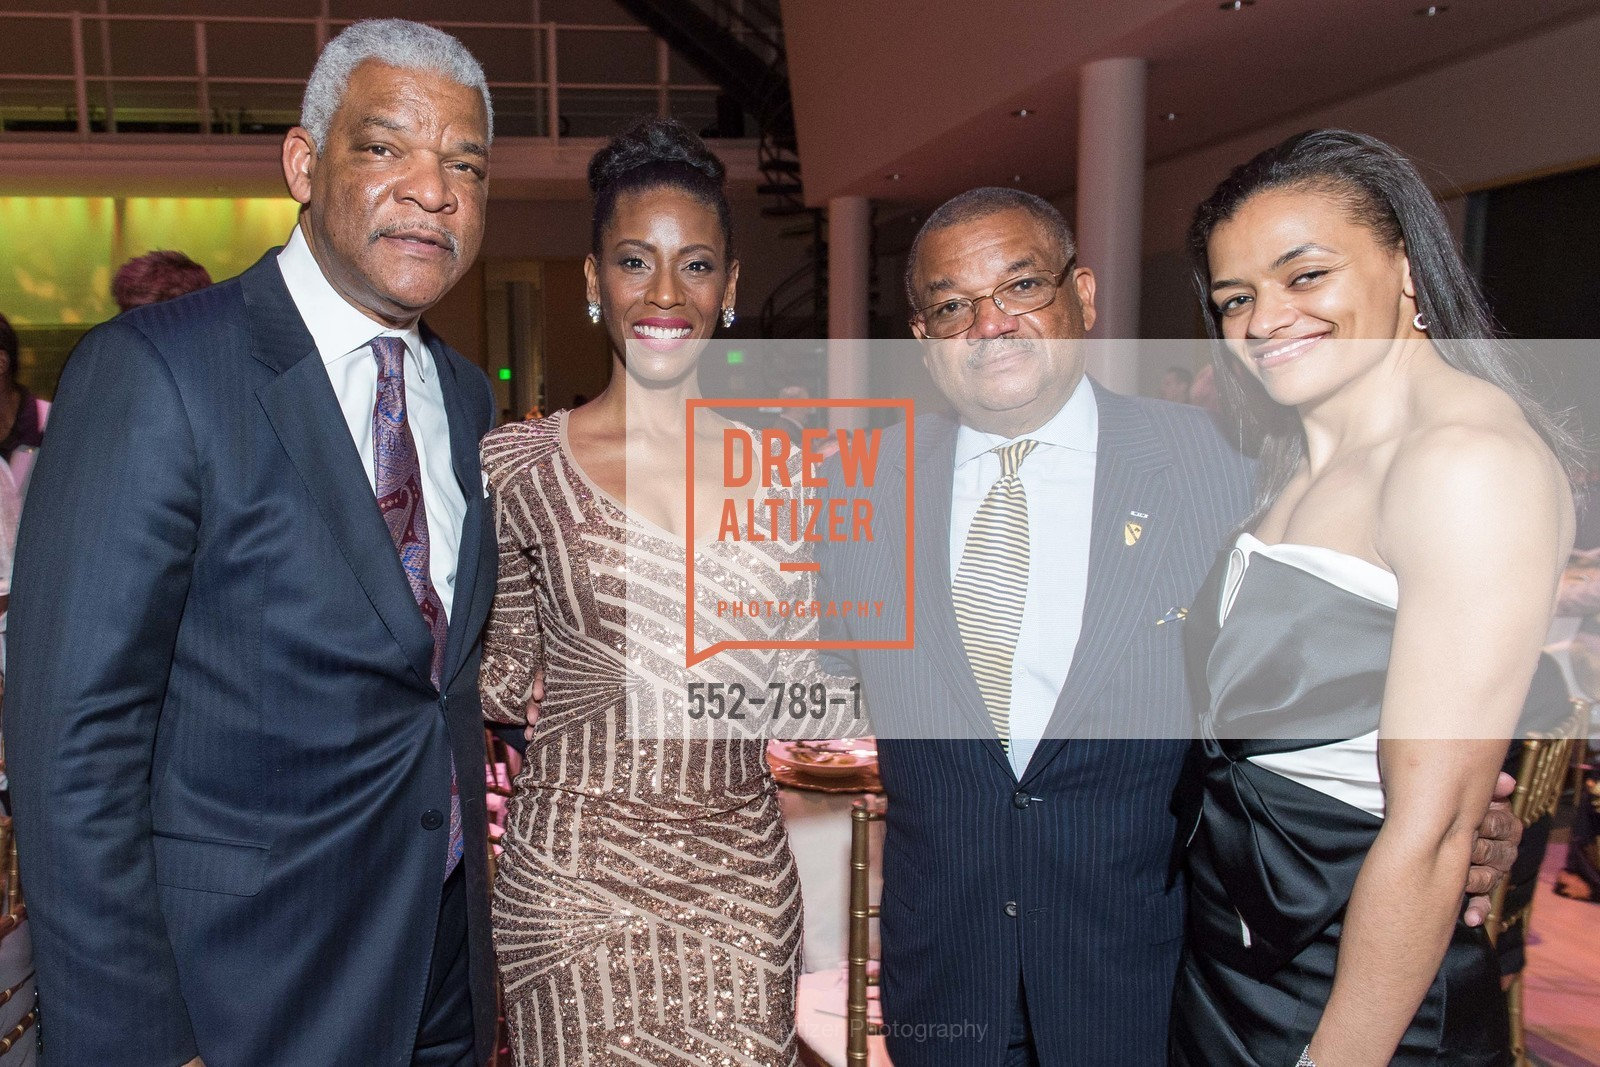 Julius Robinson, Michelle Hudson, Carl Hackney, Felice Newsone, ALONZO KING LINE'S Ballet Spring Gala 2015, US, April 11th, 2015,Drew Altizer, Drew Altizer Photography, full-service agency, private events, San Francisco photographer, photographer california